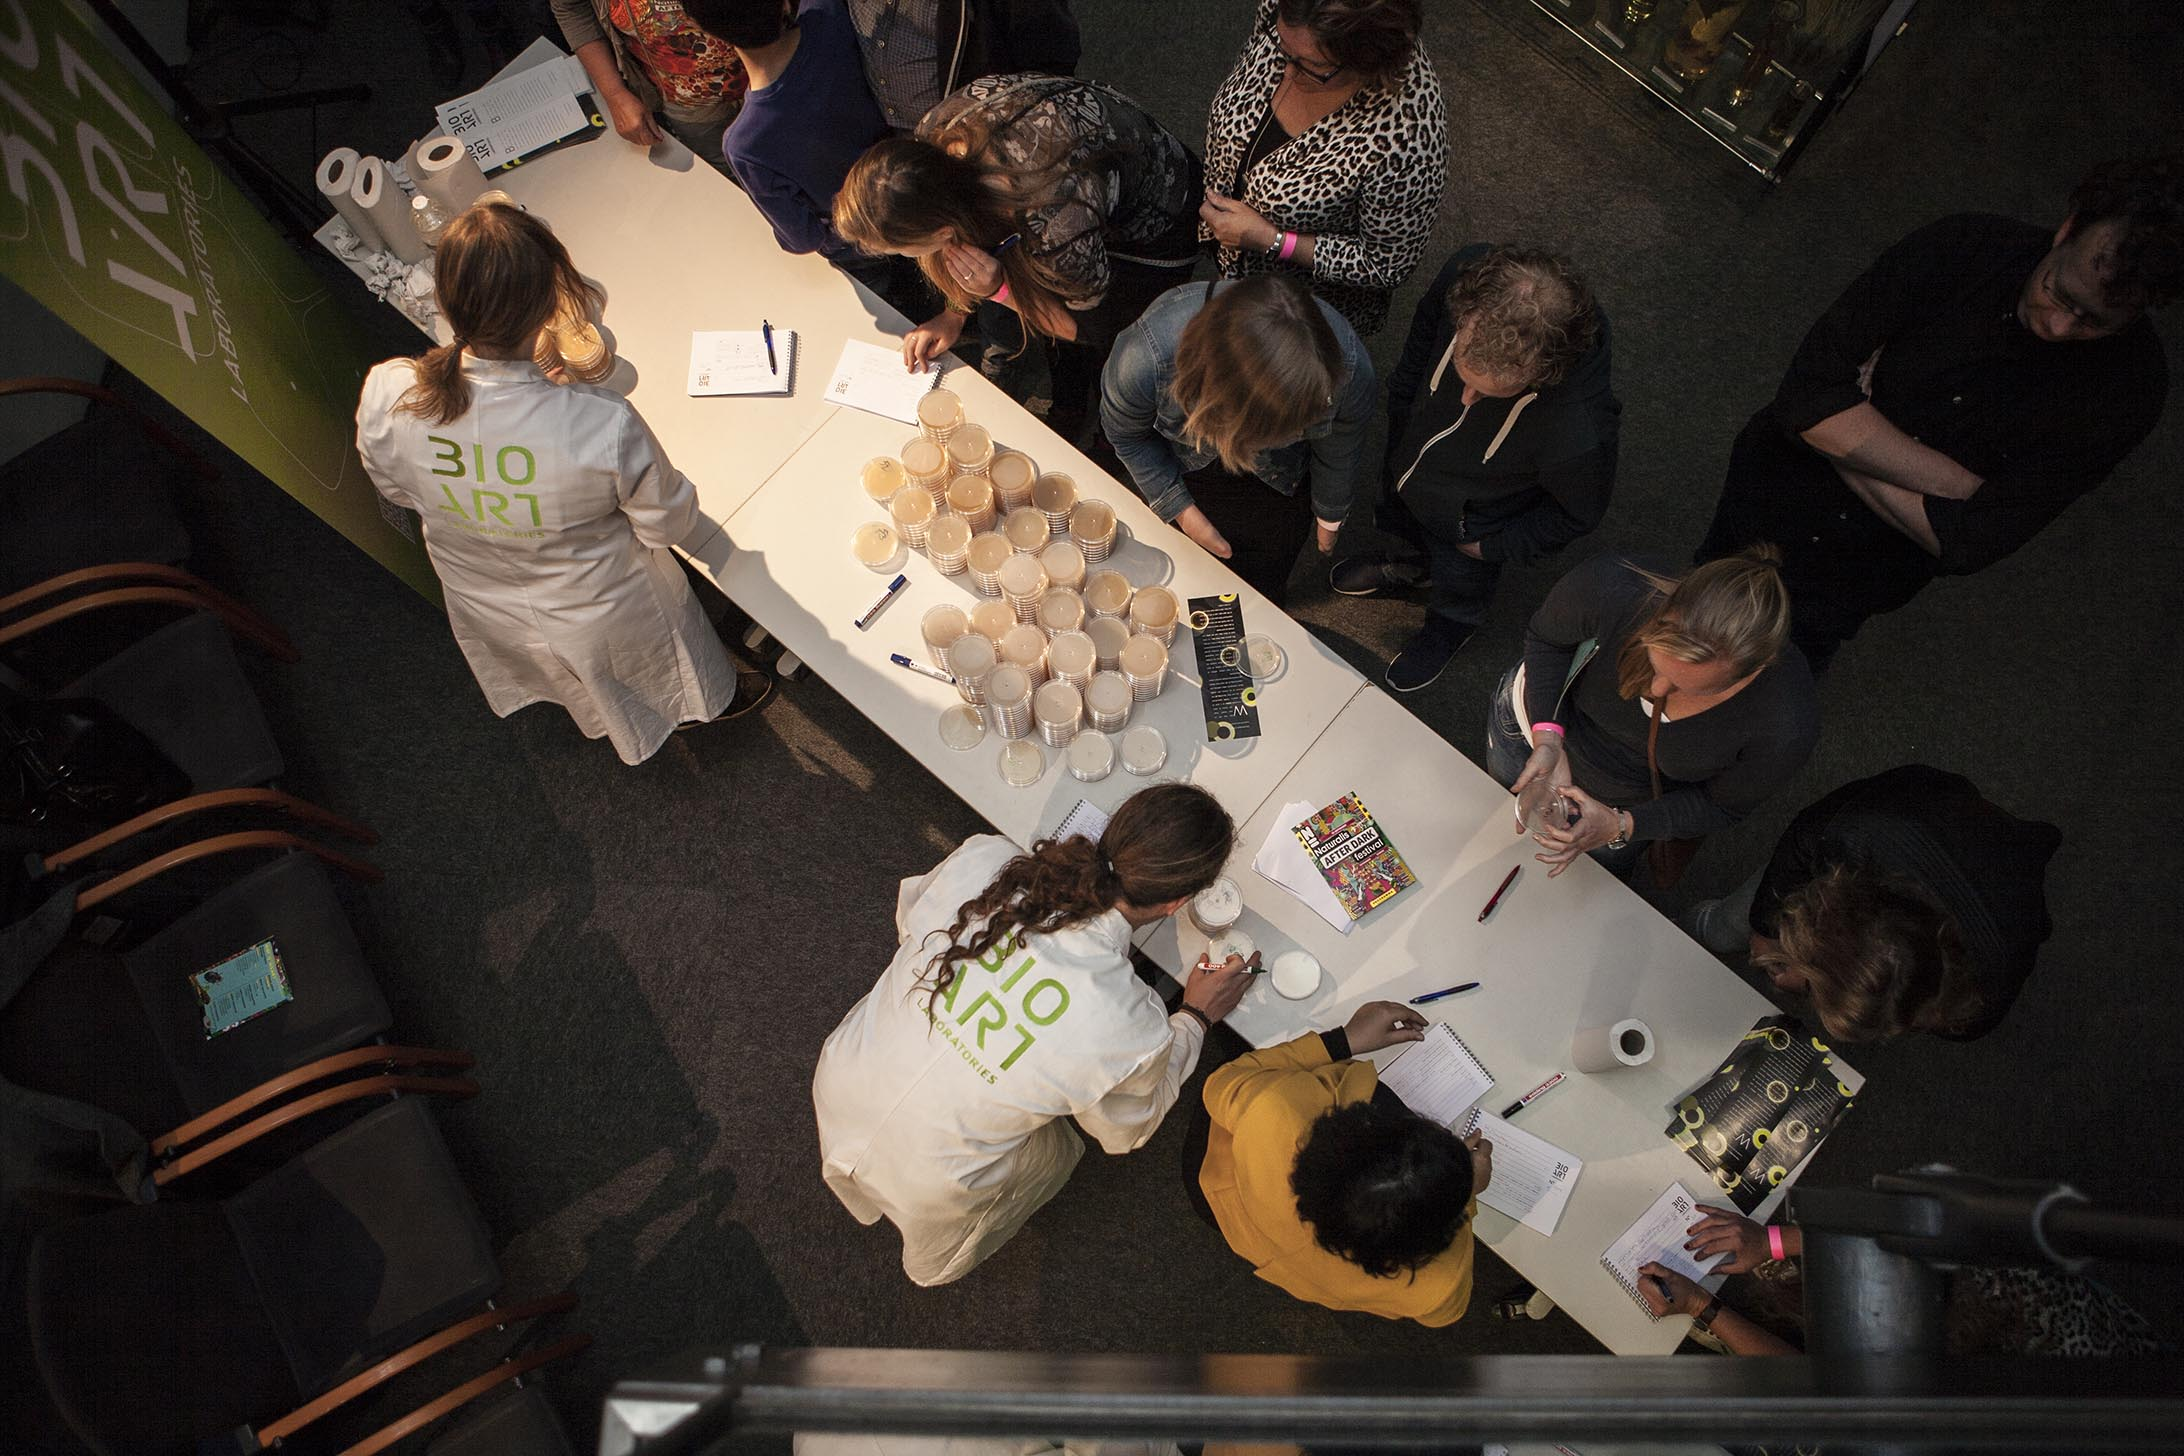 Naturals After Dark XXL, an interactive event for the public, by BioArt Laboratories in 2015